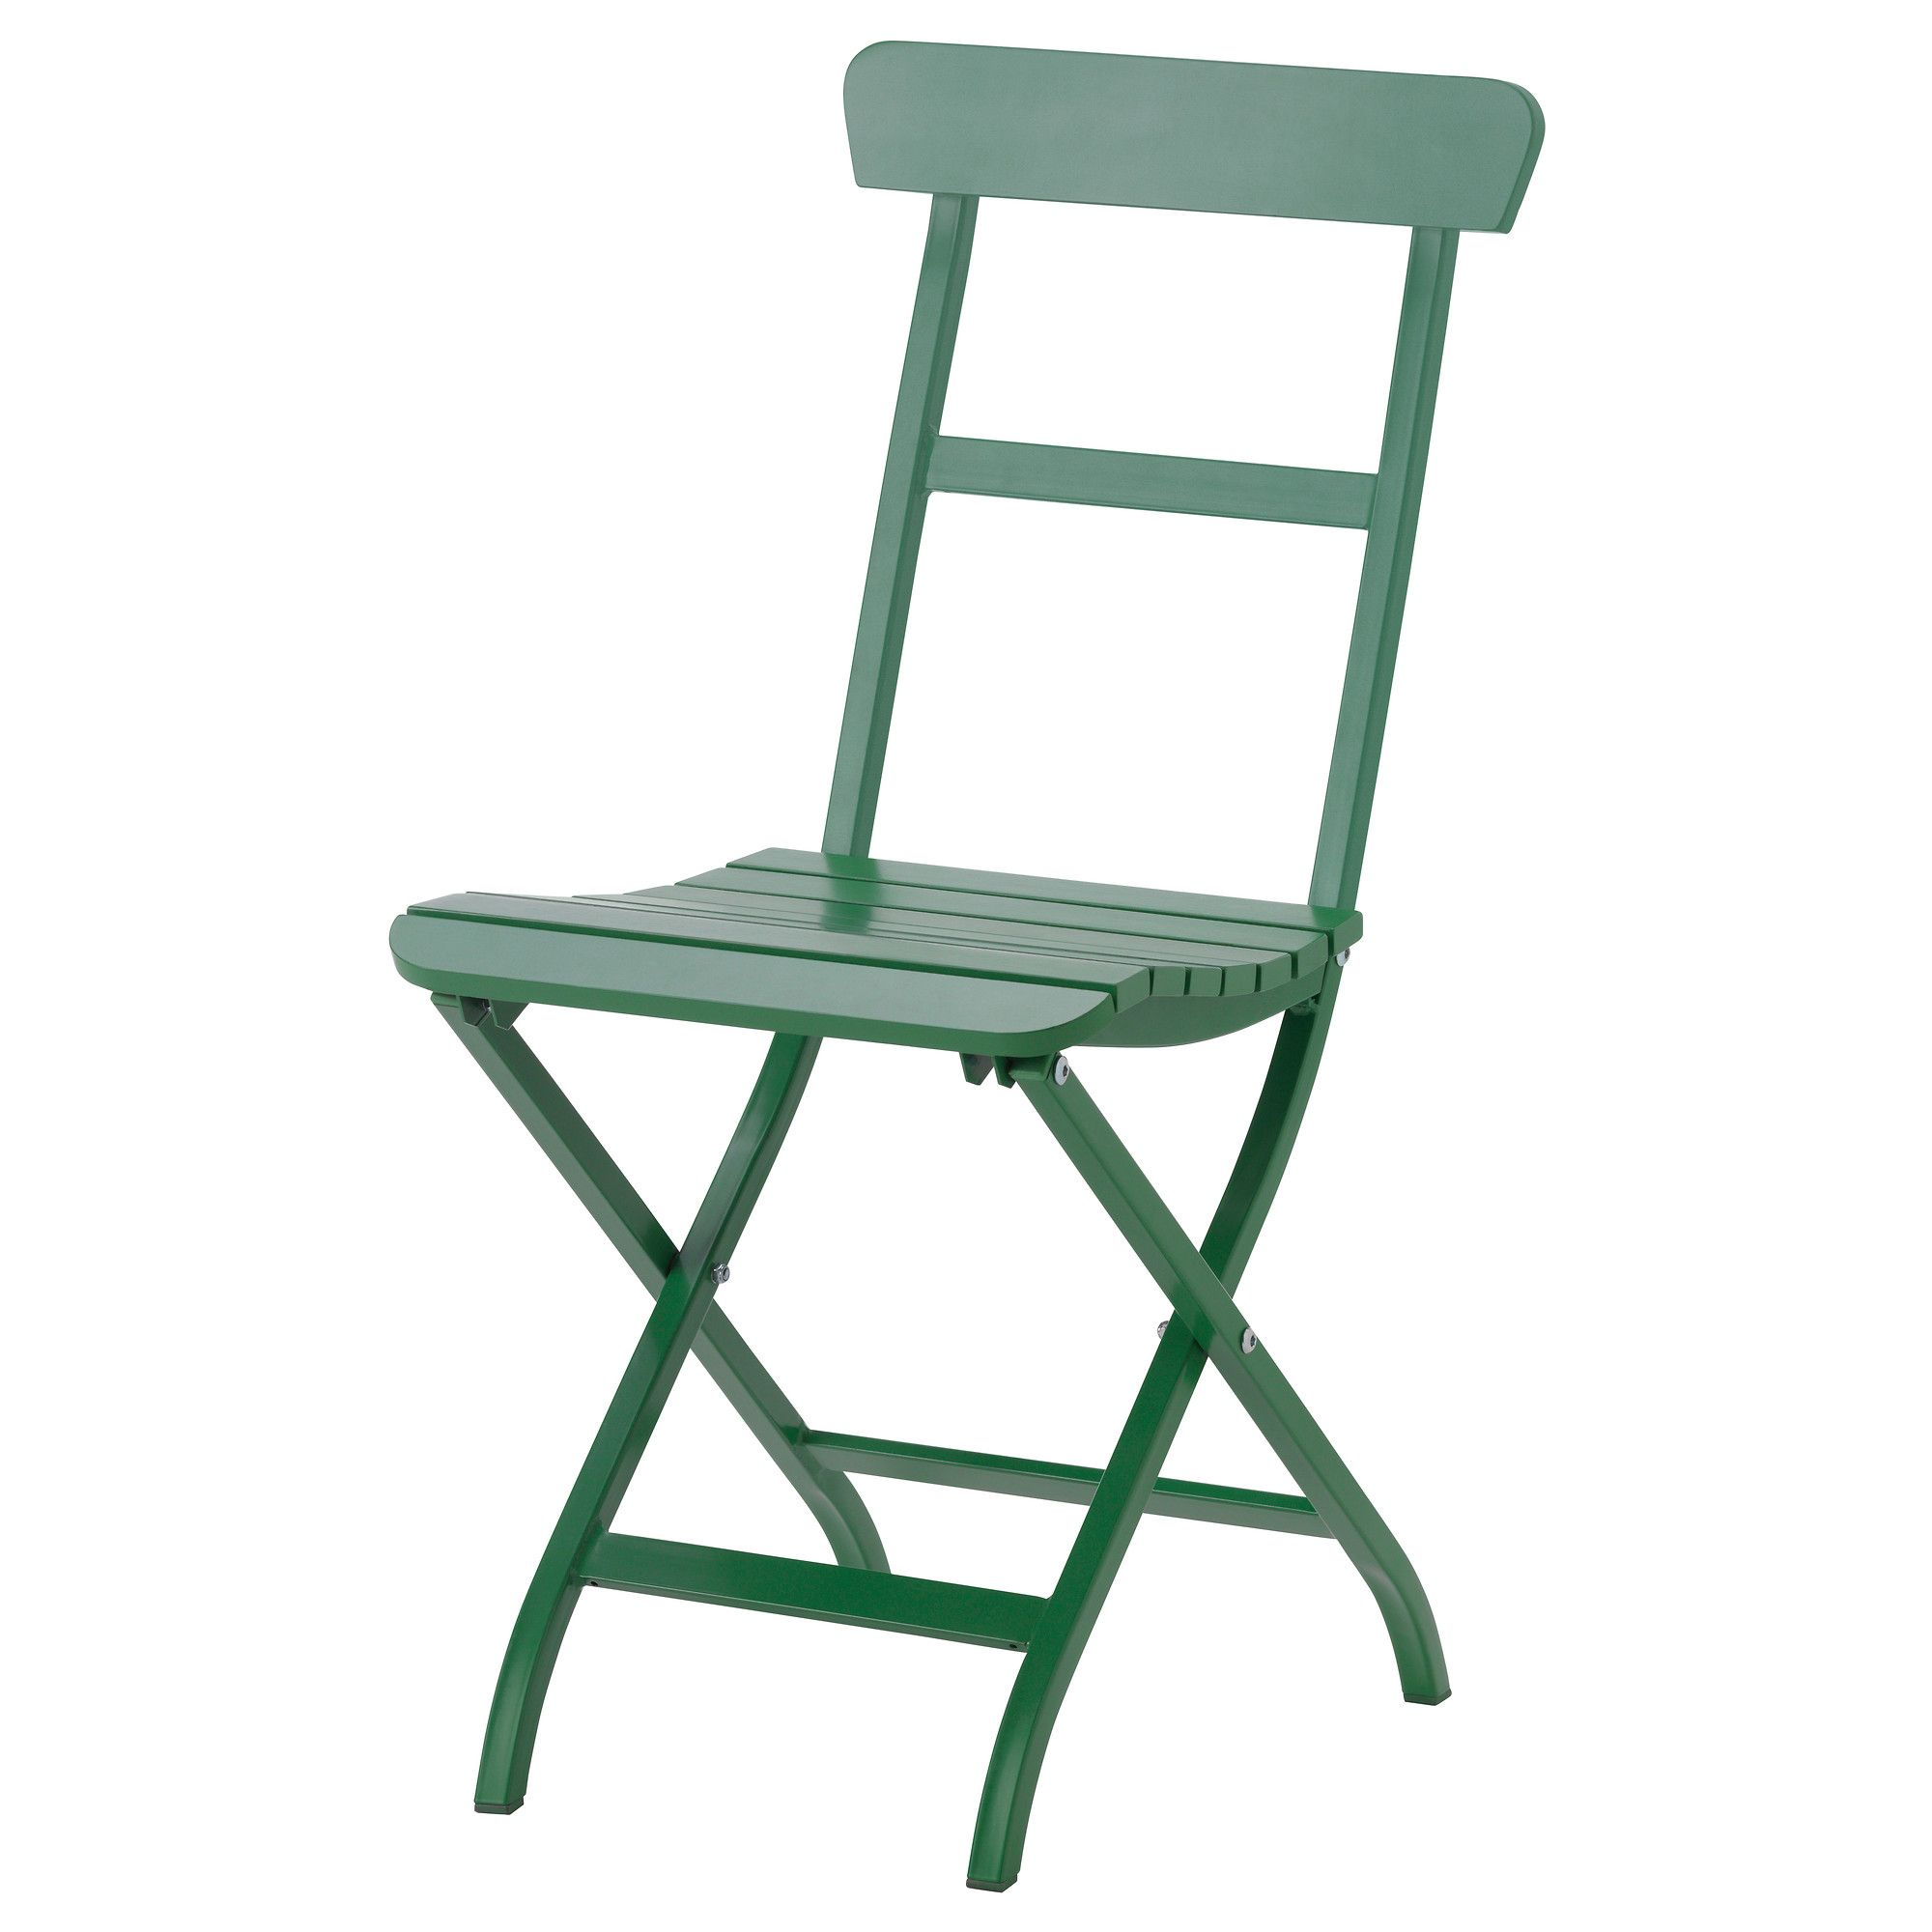 MÄlarÖ Folding Chair Green Ikea